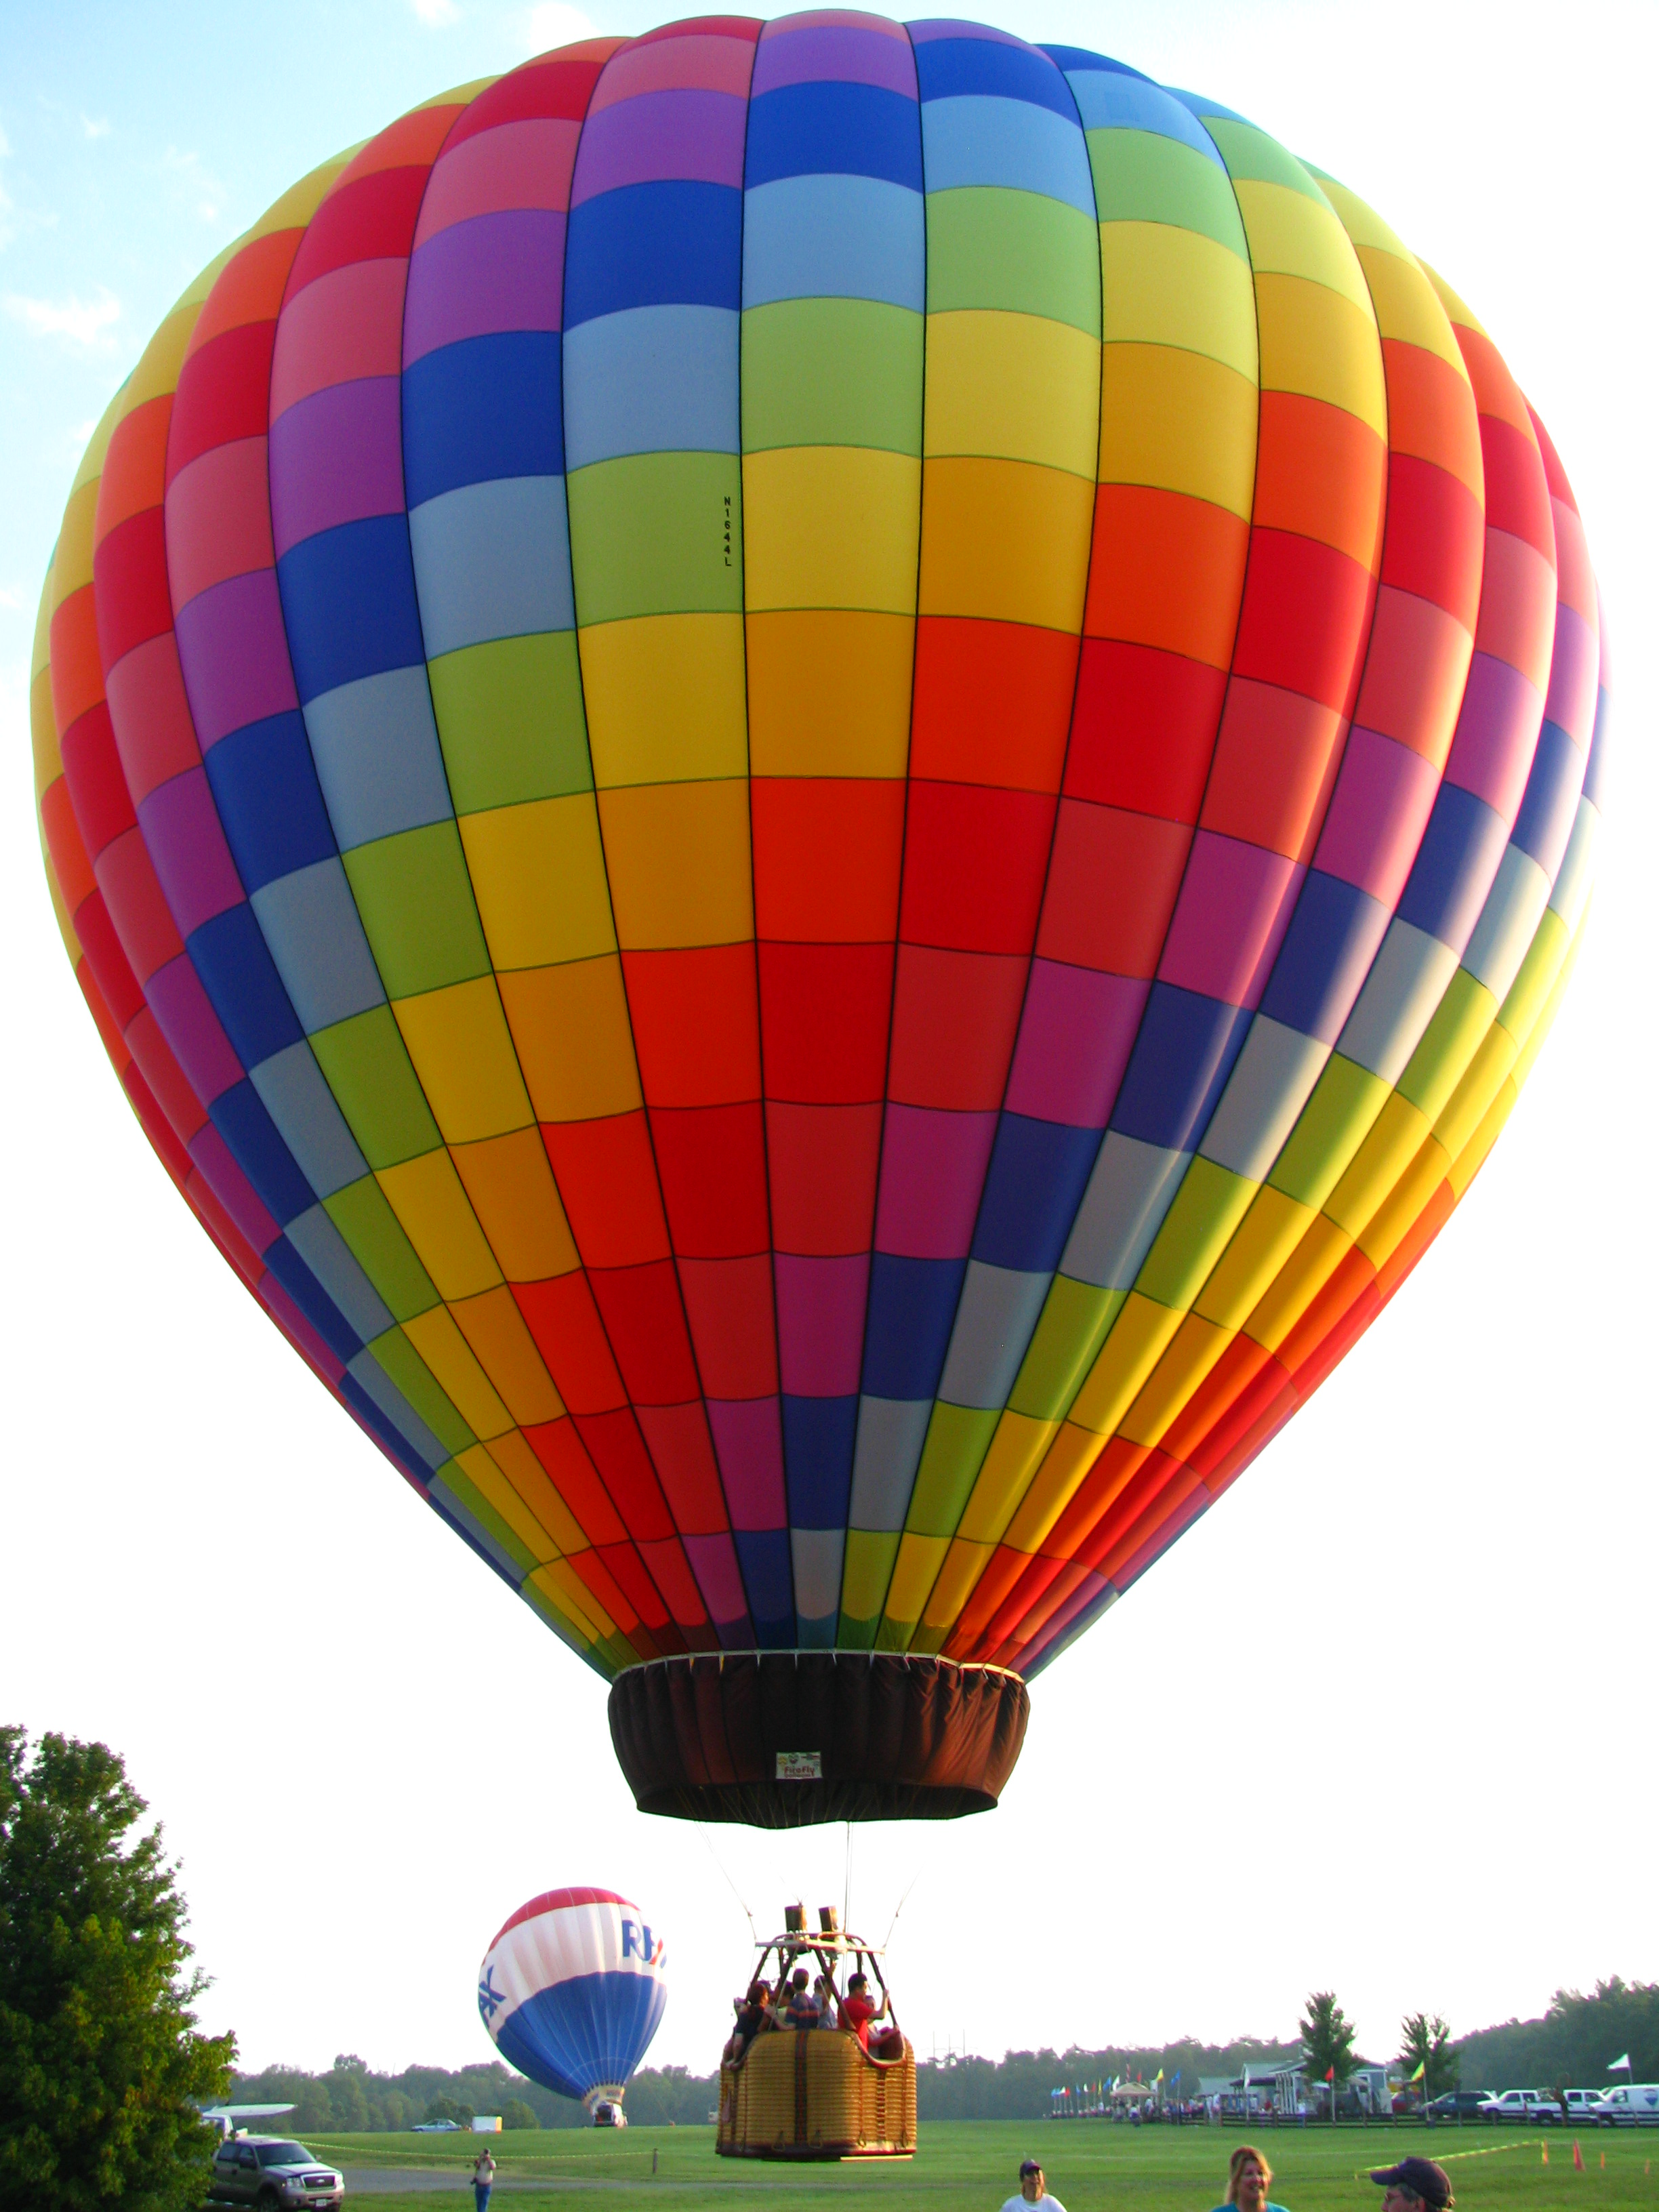 1000+ images about Hot air balloons on Pinterest | Hot air ...